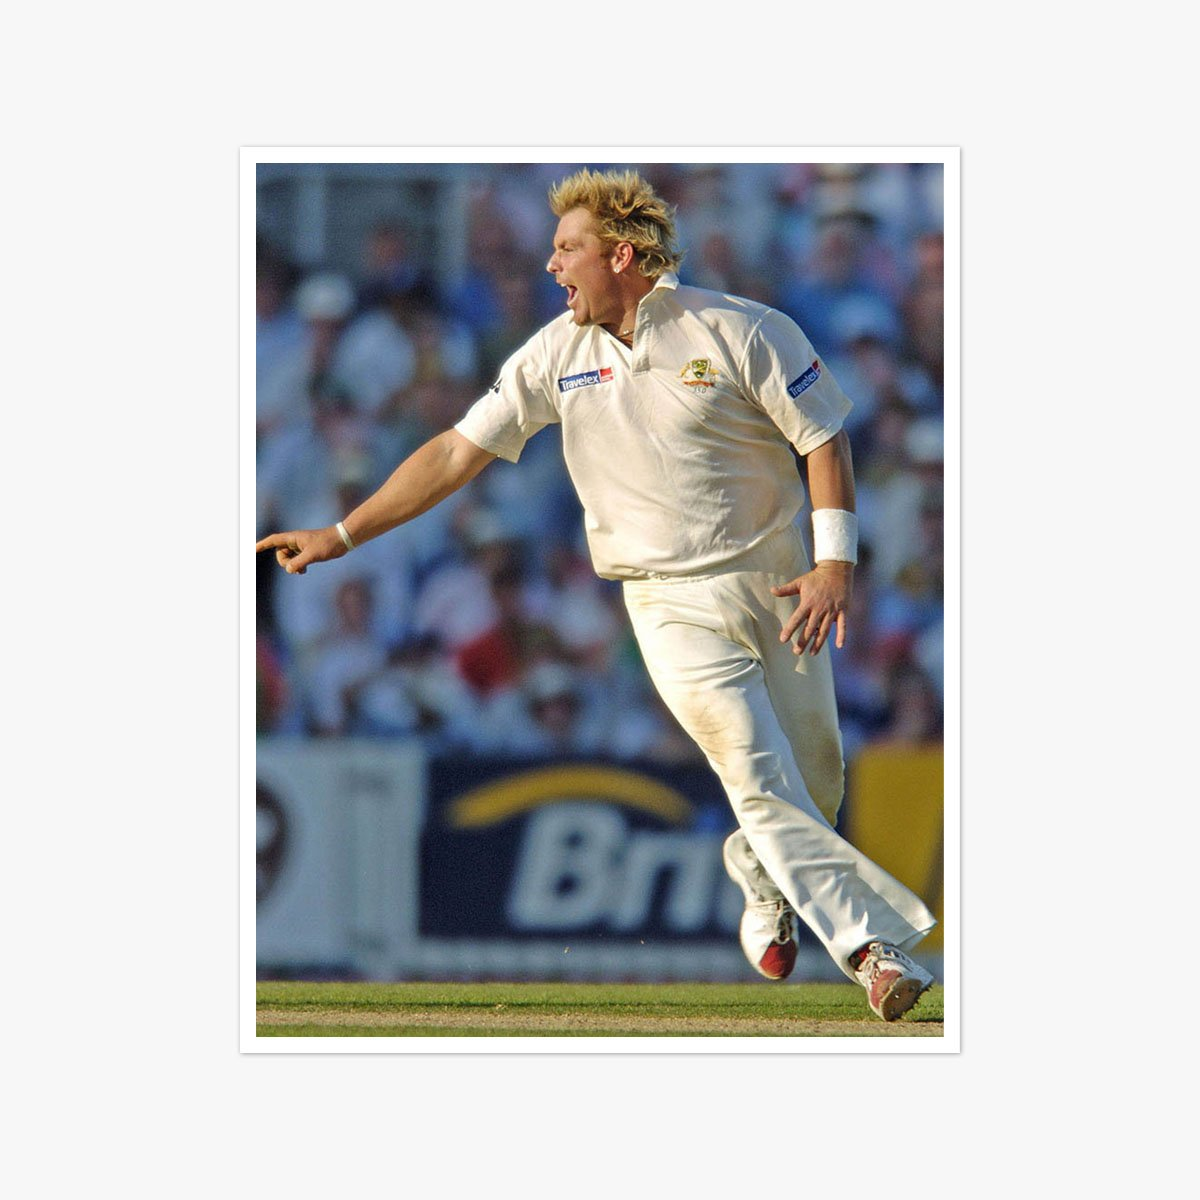 Shane Warne by David Ashdown